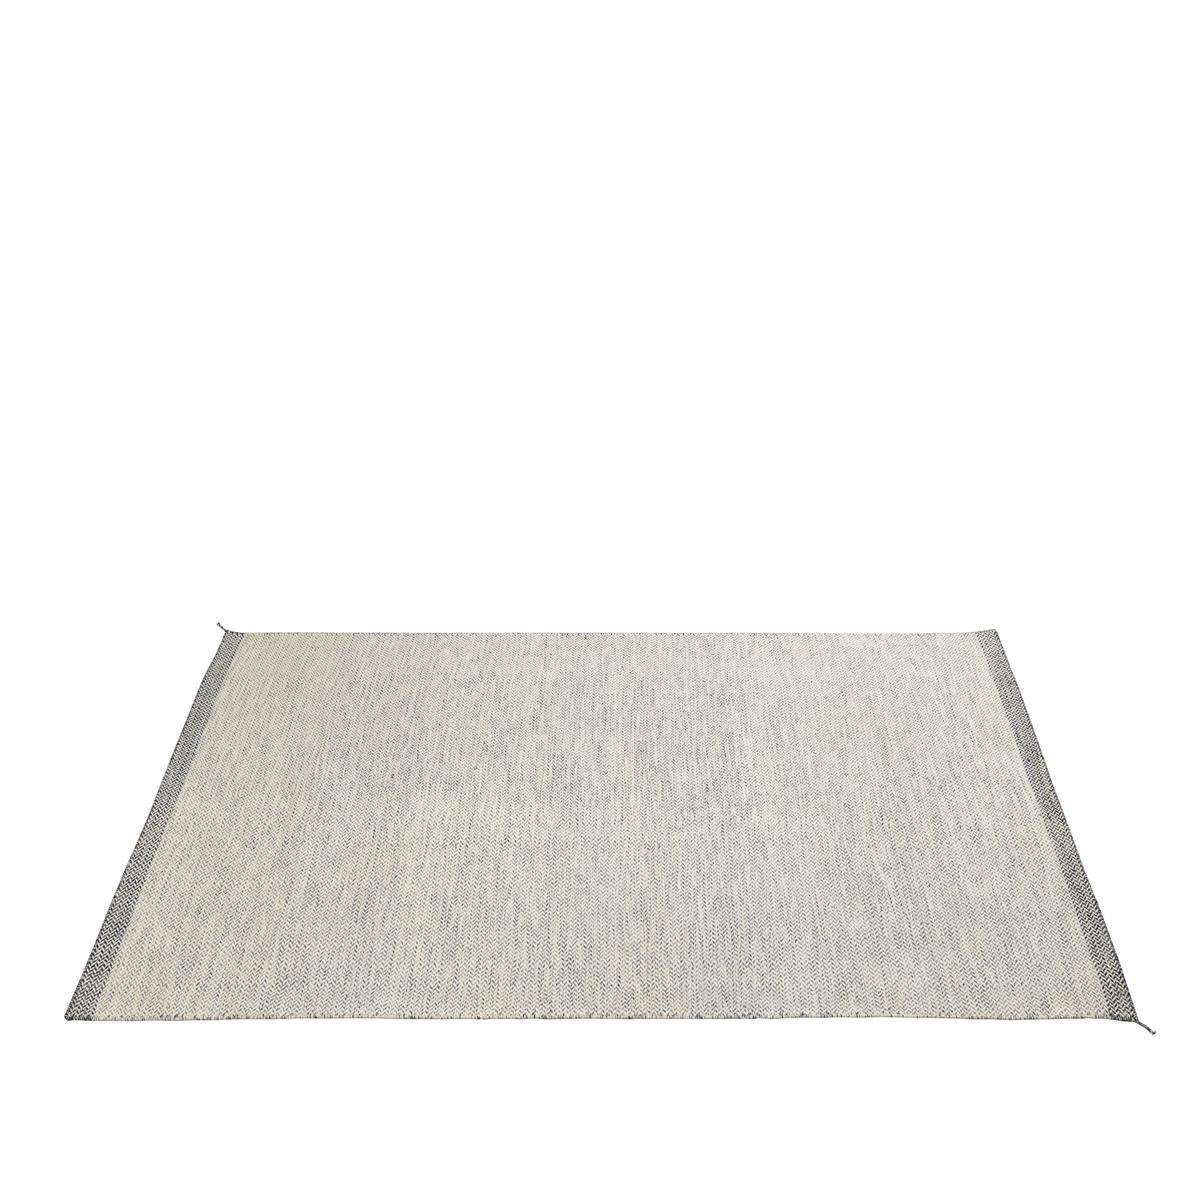 Ply Rug i 200 X 300 cm, Off-white